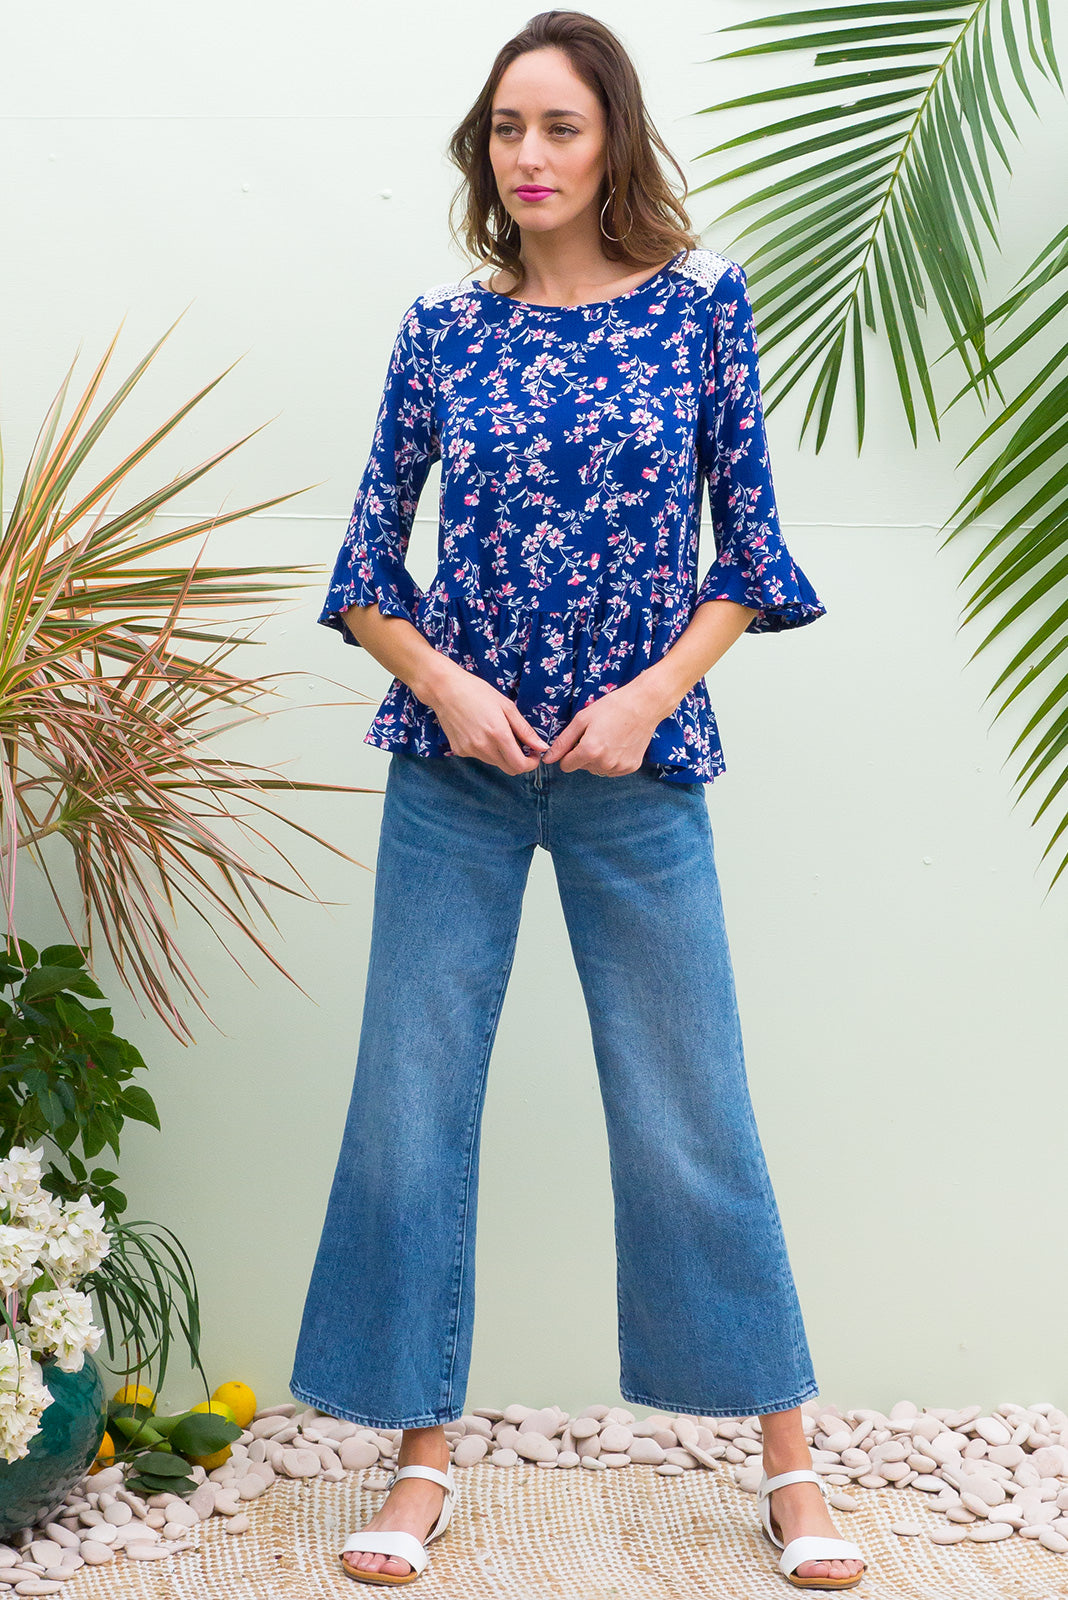 Sienna Tanna Blue Top frill top has a soft drop waist and a bias cut frill sleeve cuff it comes in a crinkle textured rayon with a bold and bright royal blue itzy floral print